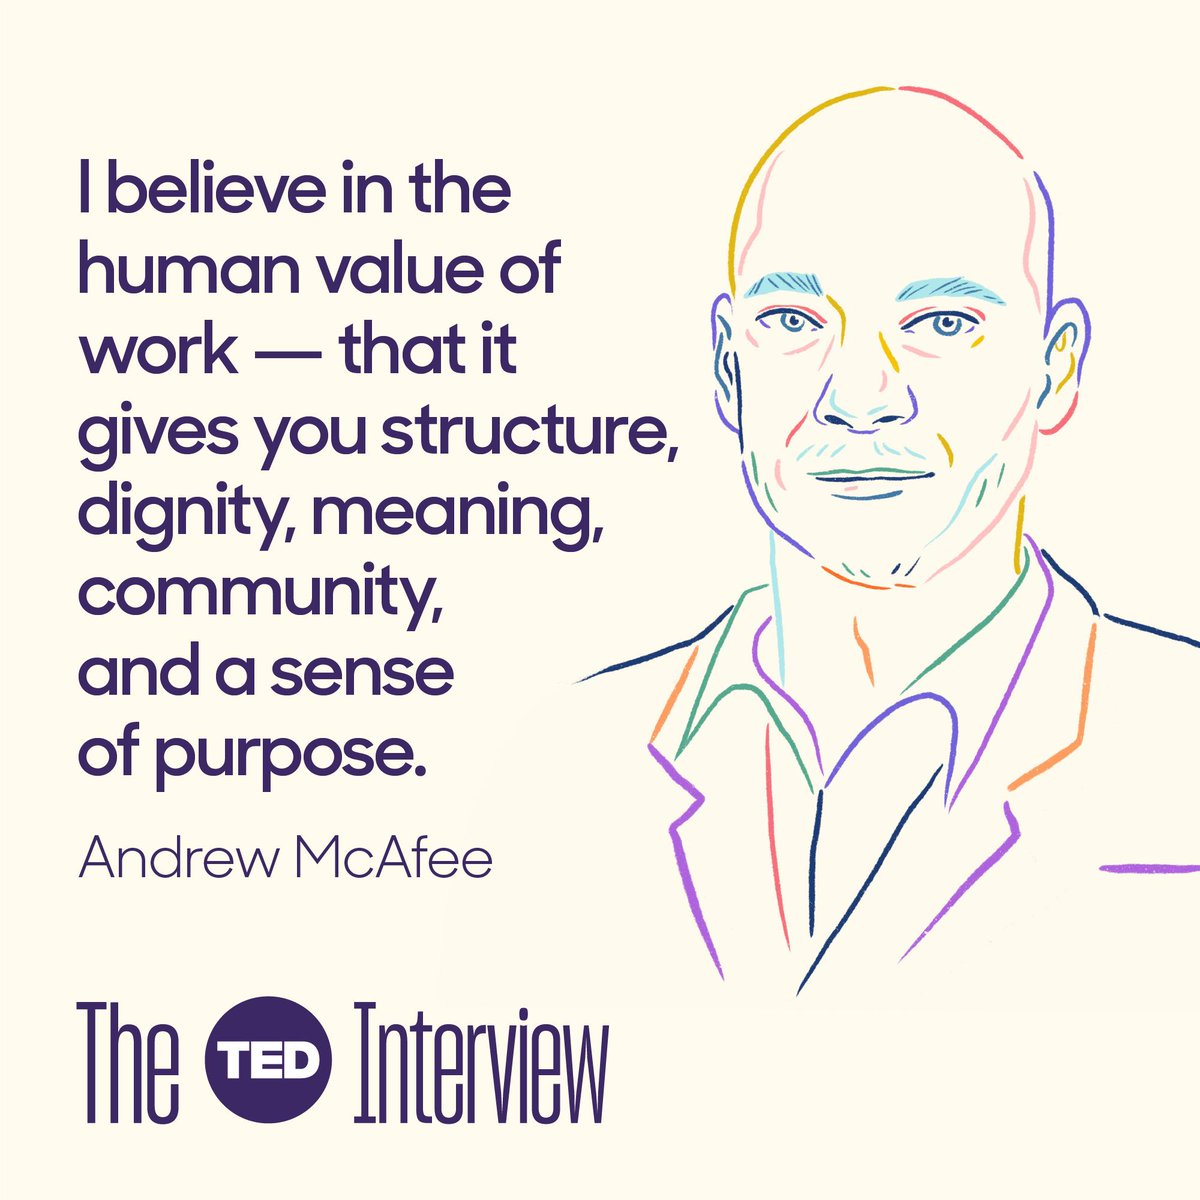 Latest episode of #TheTEDInterview features Andy McAfee @amcafee who is so compelling on how our economy is going to be transformed by technology... for better and worse. https://bit.ly/2JRTk5w  We talk AI, Robots, productivity, UBI, and the future of capitalism itself.